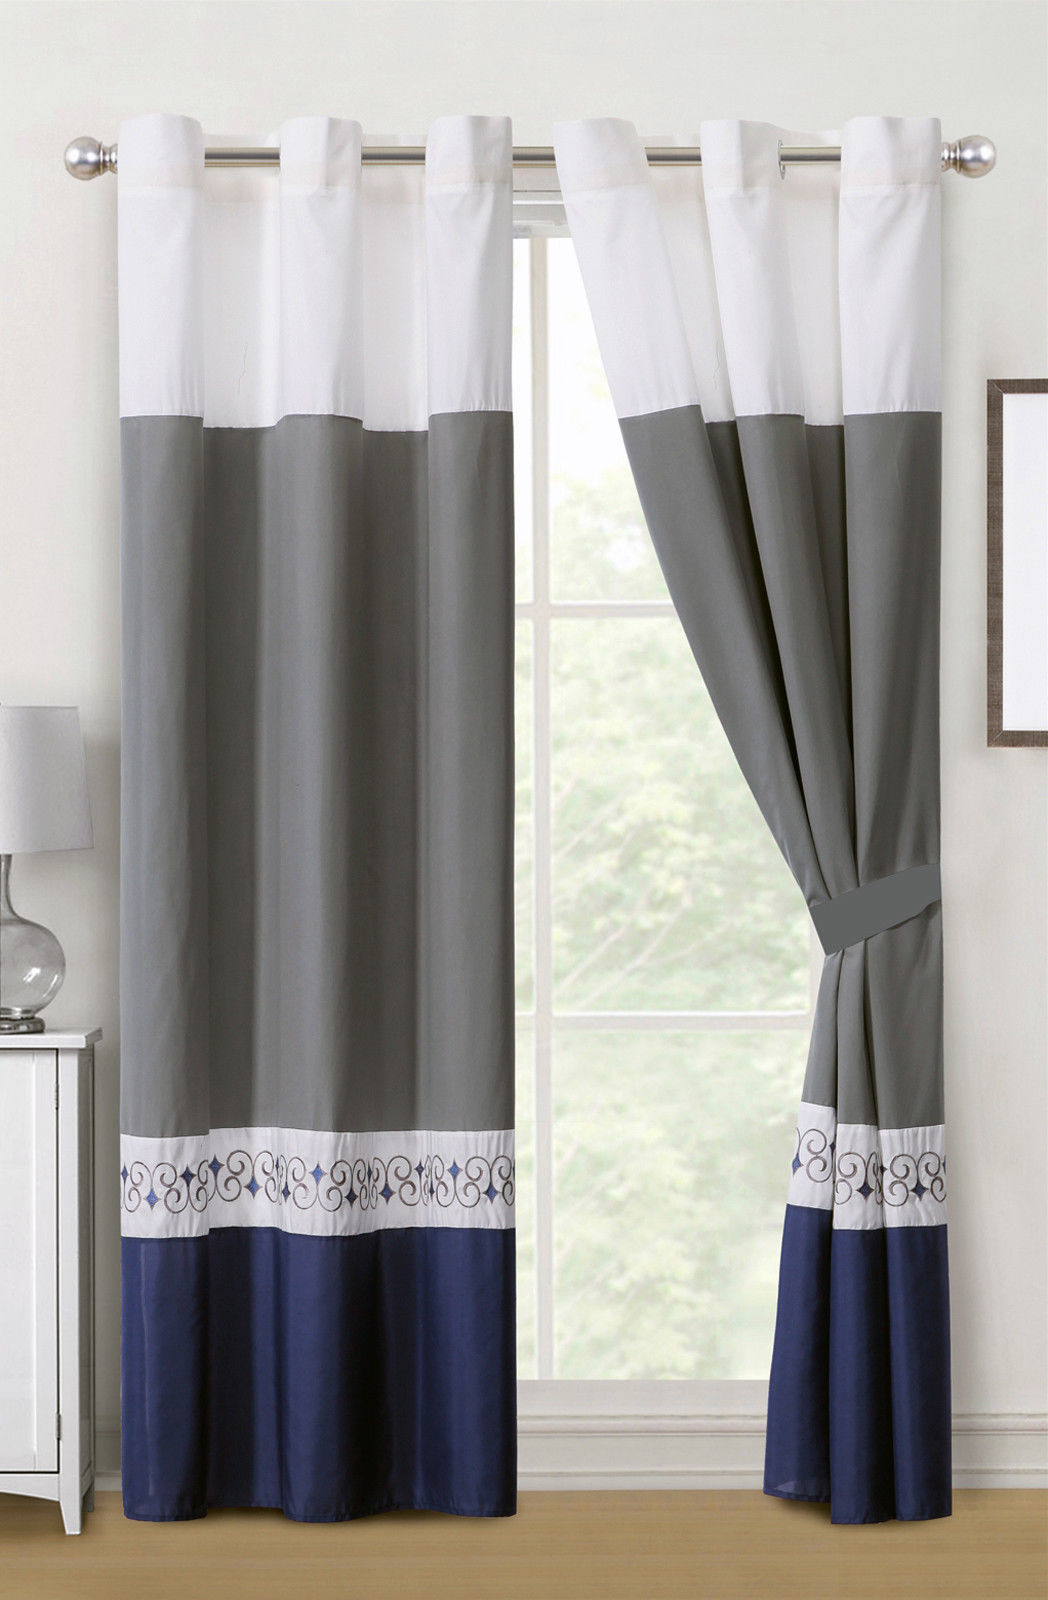 Primary image for 4-Pc Barb Spanish Scroll Diamond Embroidery Curtain Set Blue Gray White Grommet